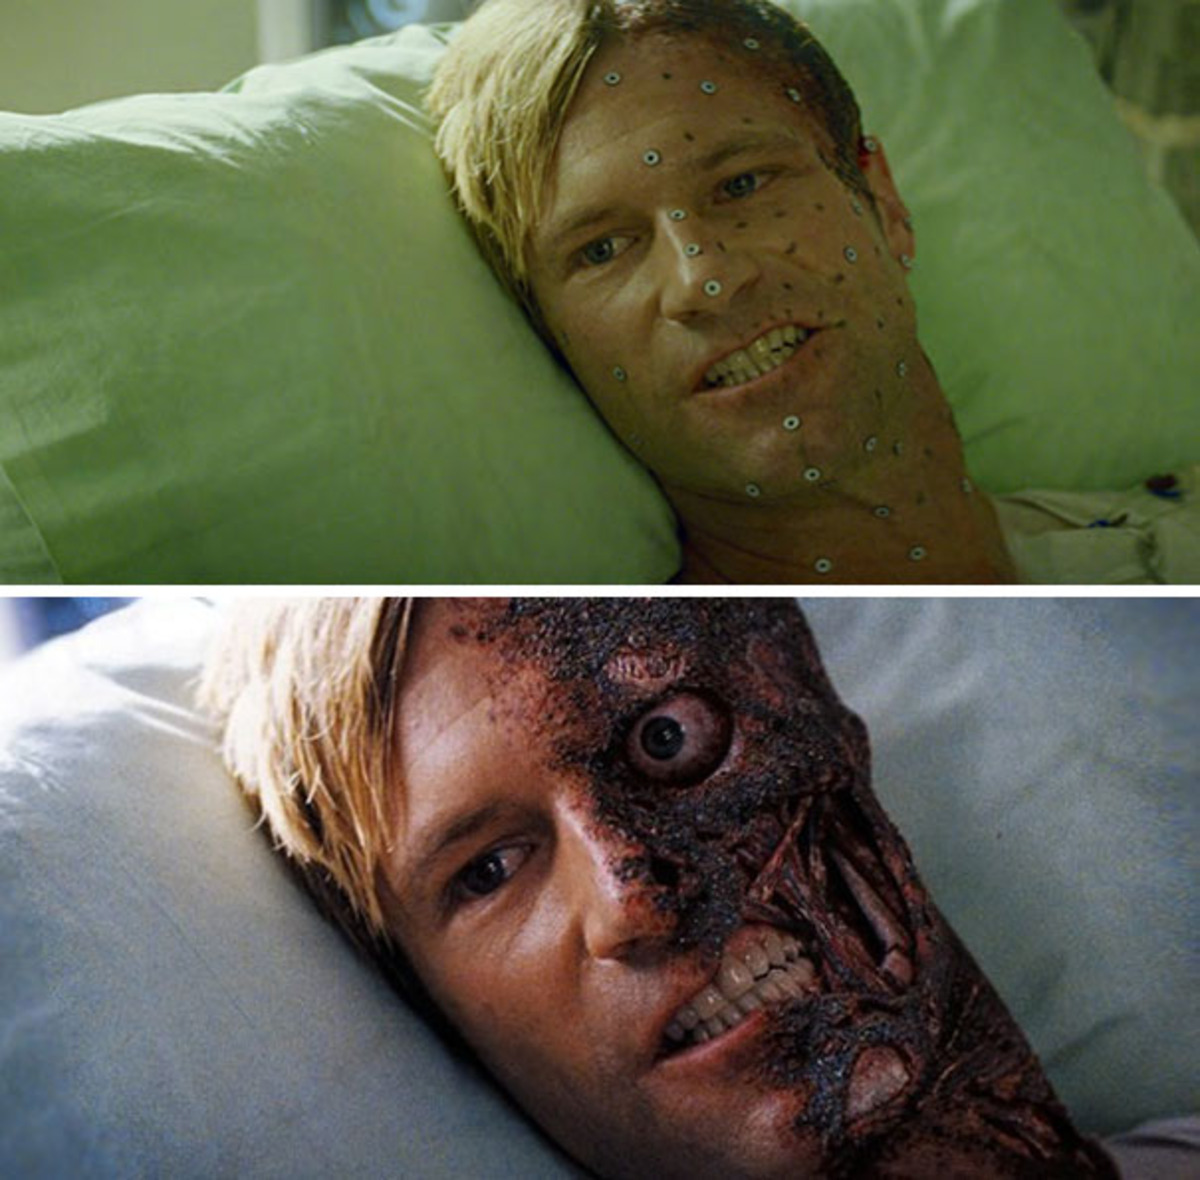 20-before-and-after-comparisons-of-movie-visual-effects-16